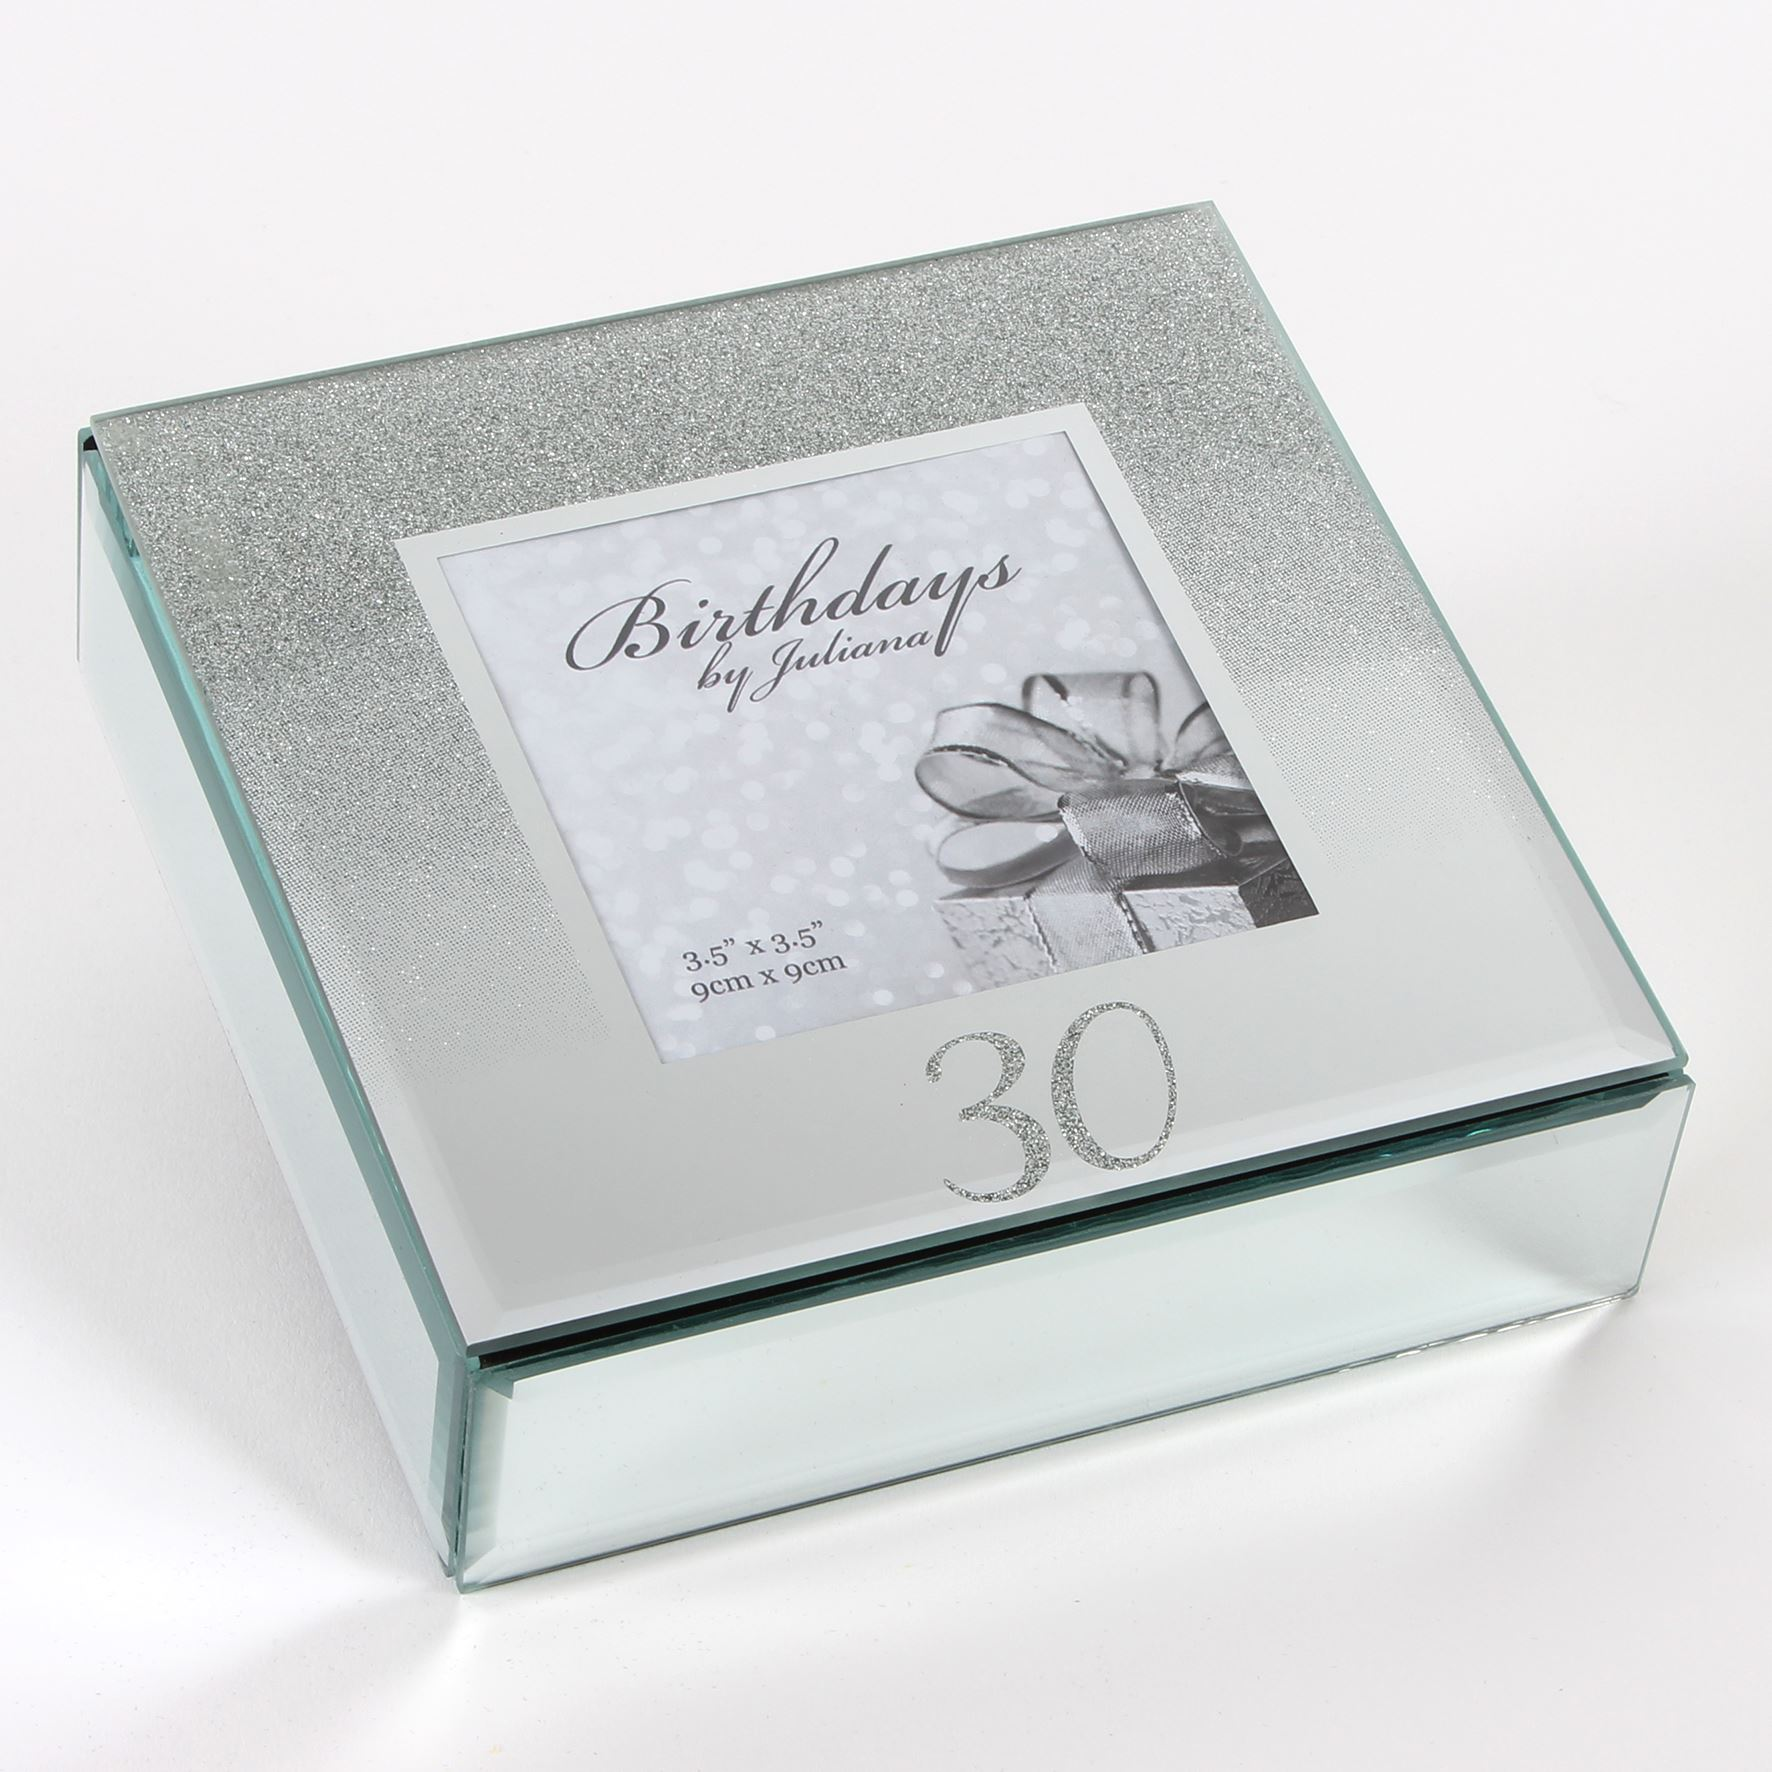 Birthdays By Juliana Glitter Mirror Trinket Box - 30Th